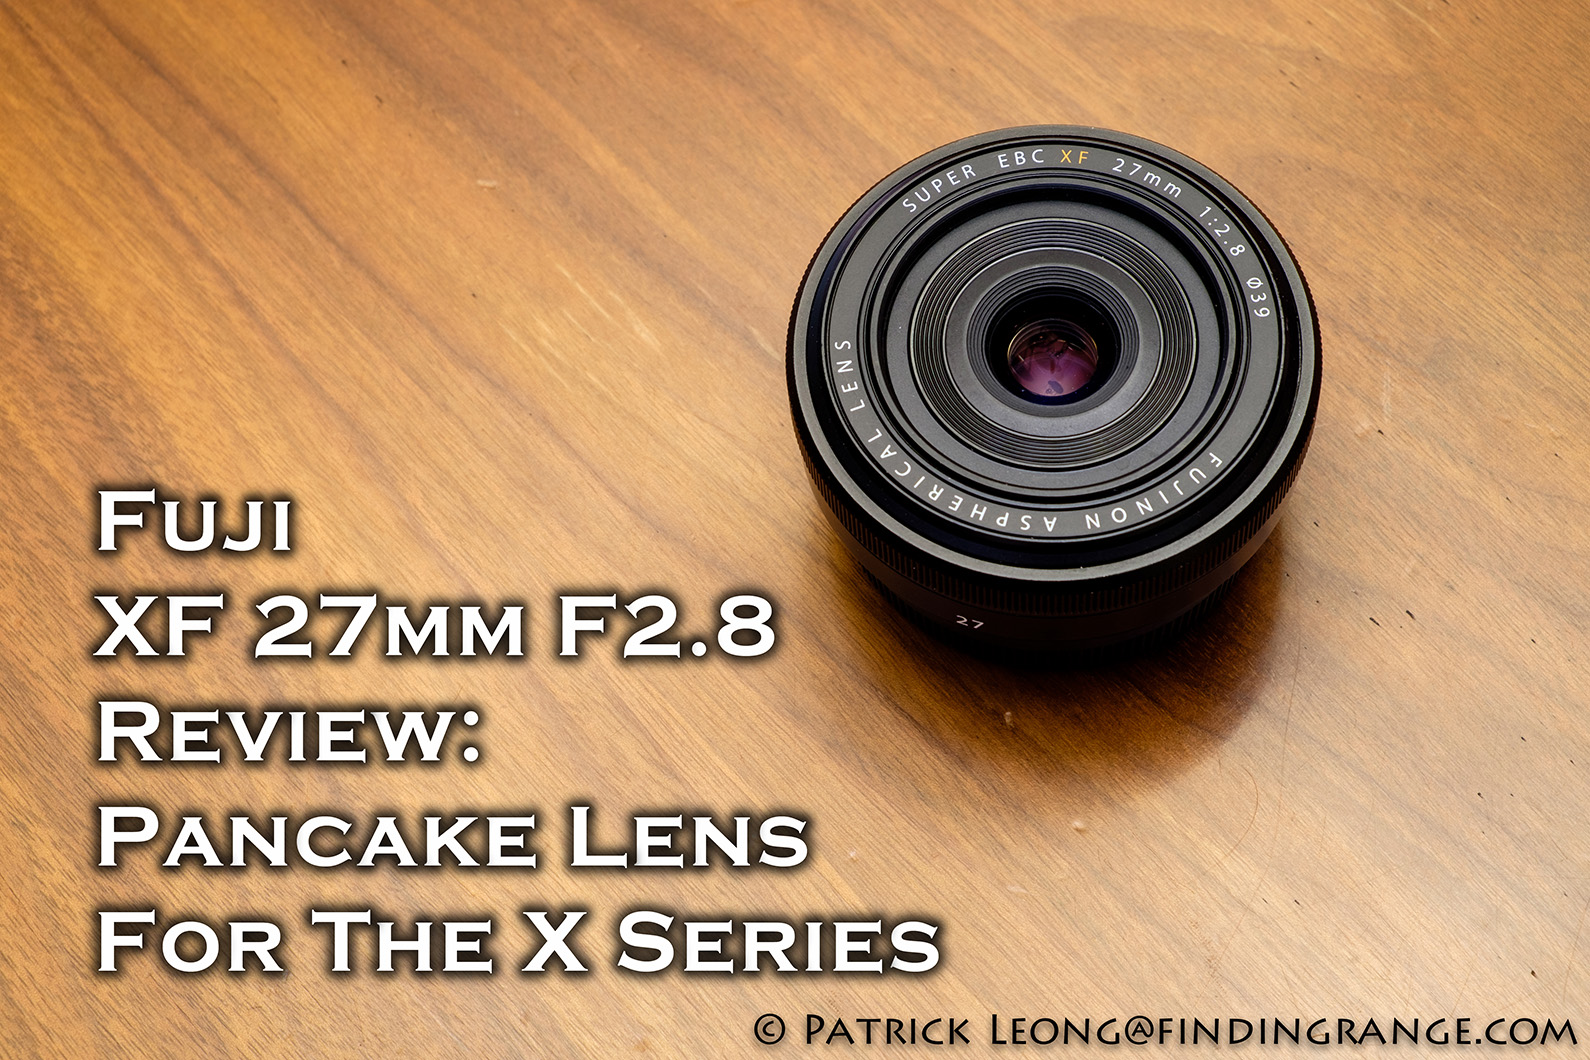 Fuji-XF-27mm-F2.8-Review-3